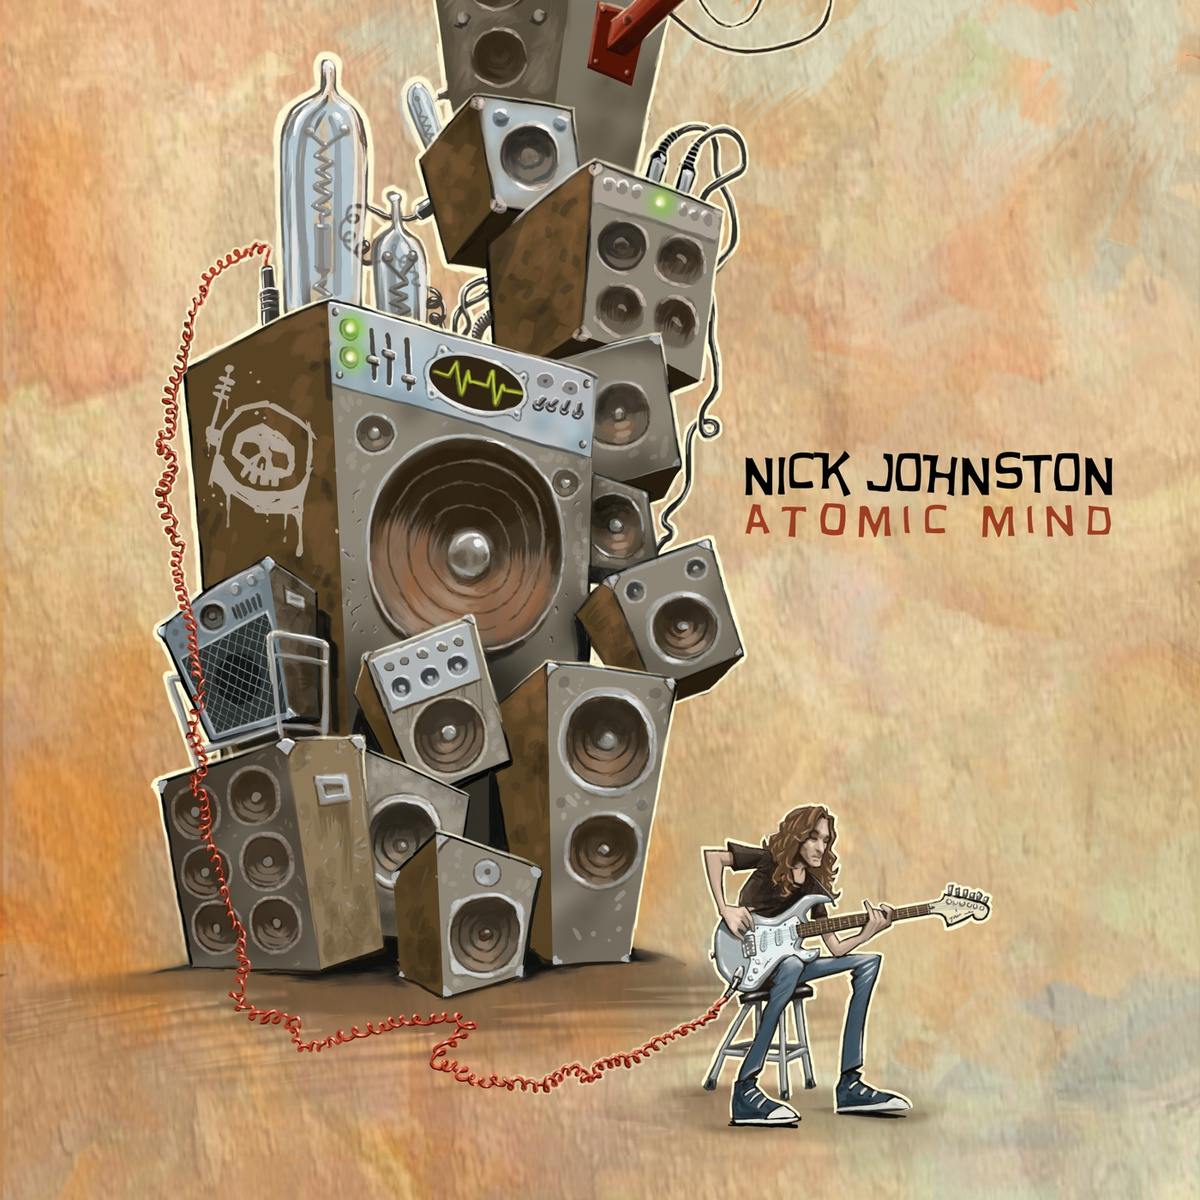 nick johnston atomic mind